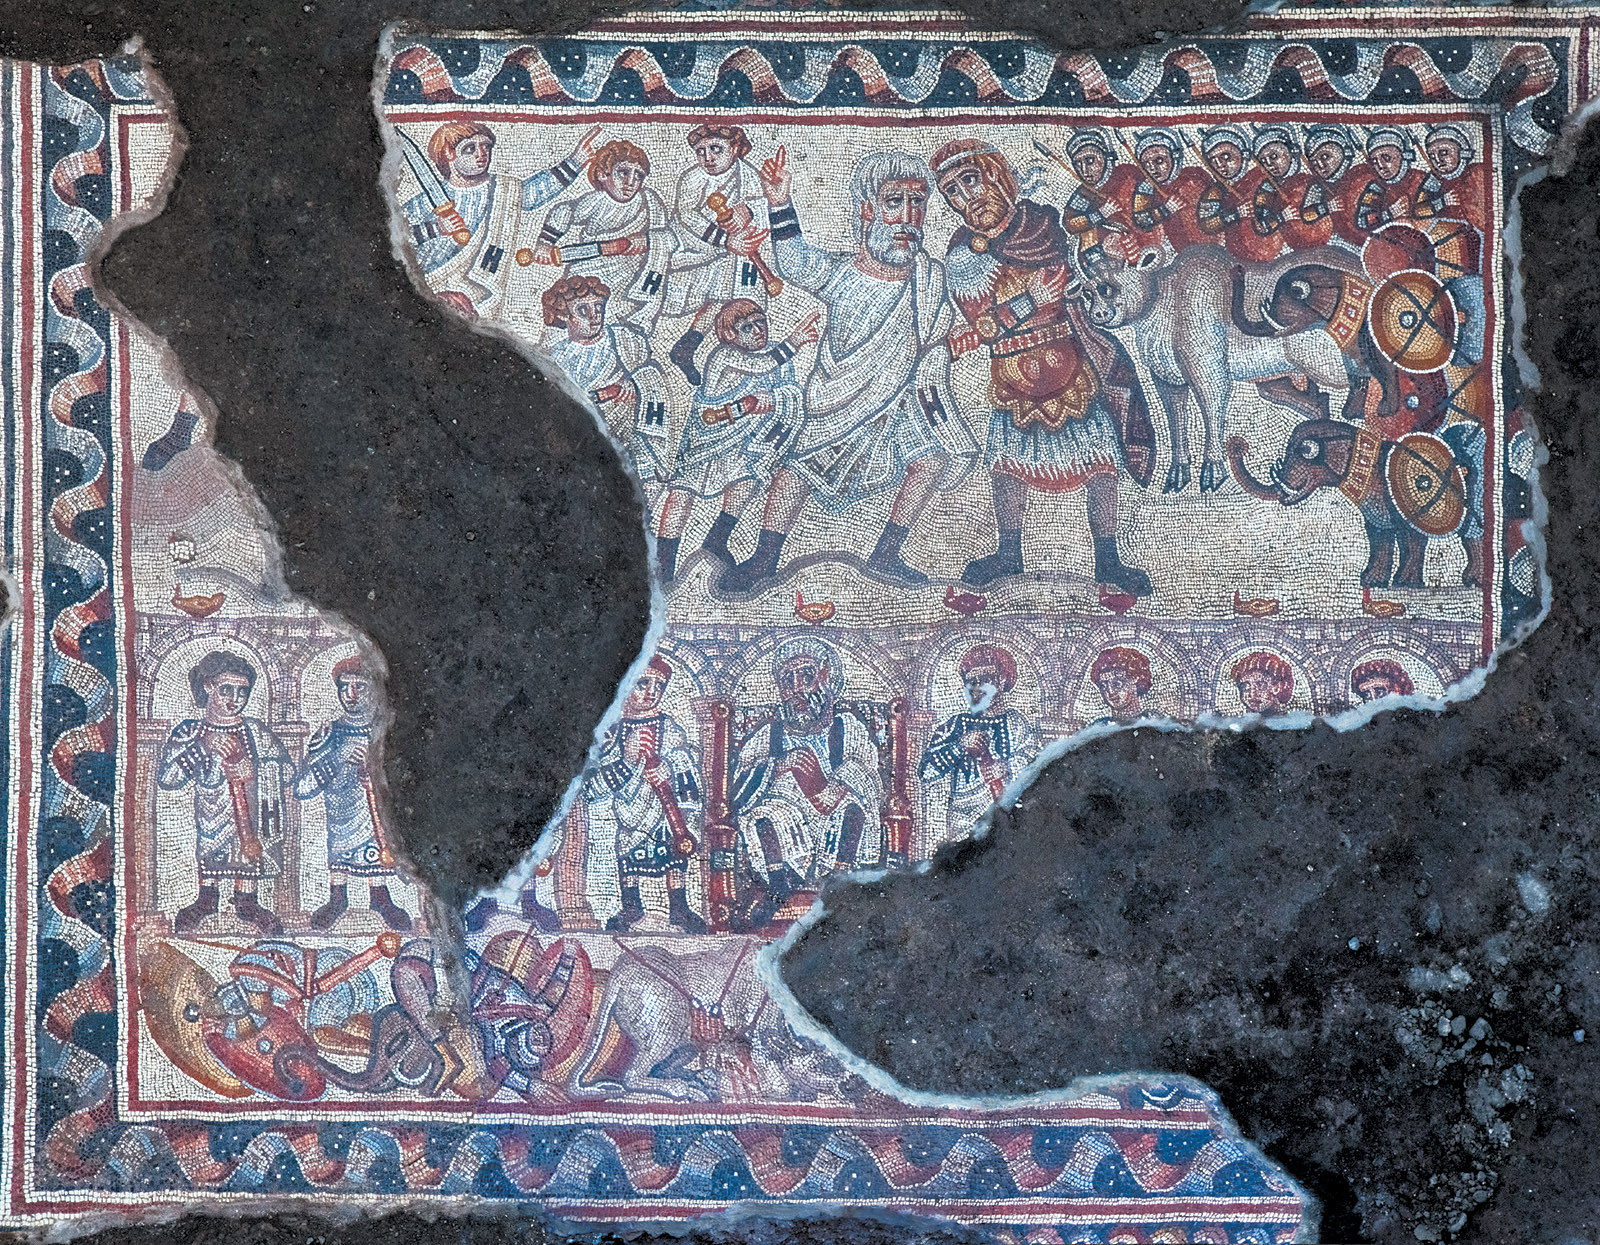 A portion of a mosaic likely depicting the resistance of the Maccabees to the Seleucid king Antiochus IV in the mid-second century BCE, Lower Galilee